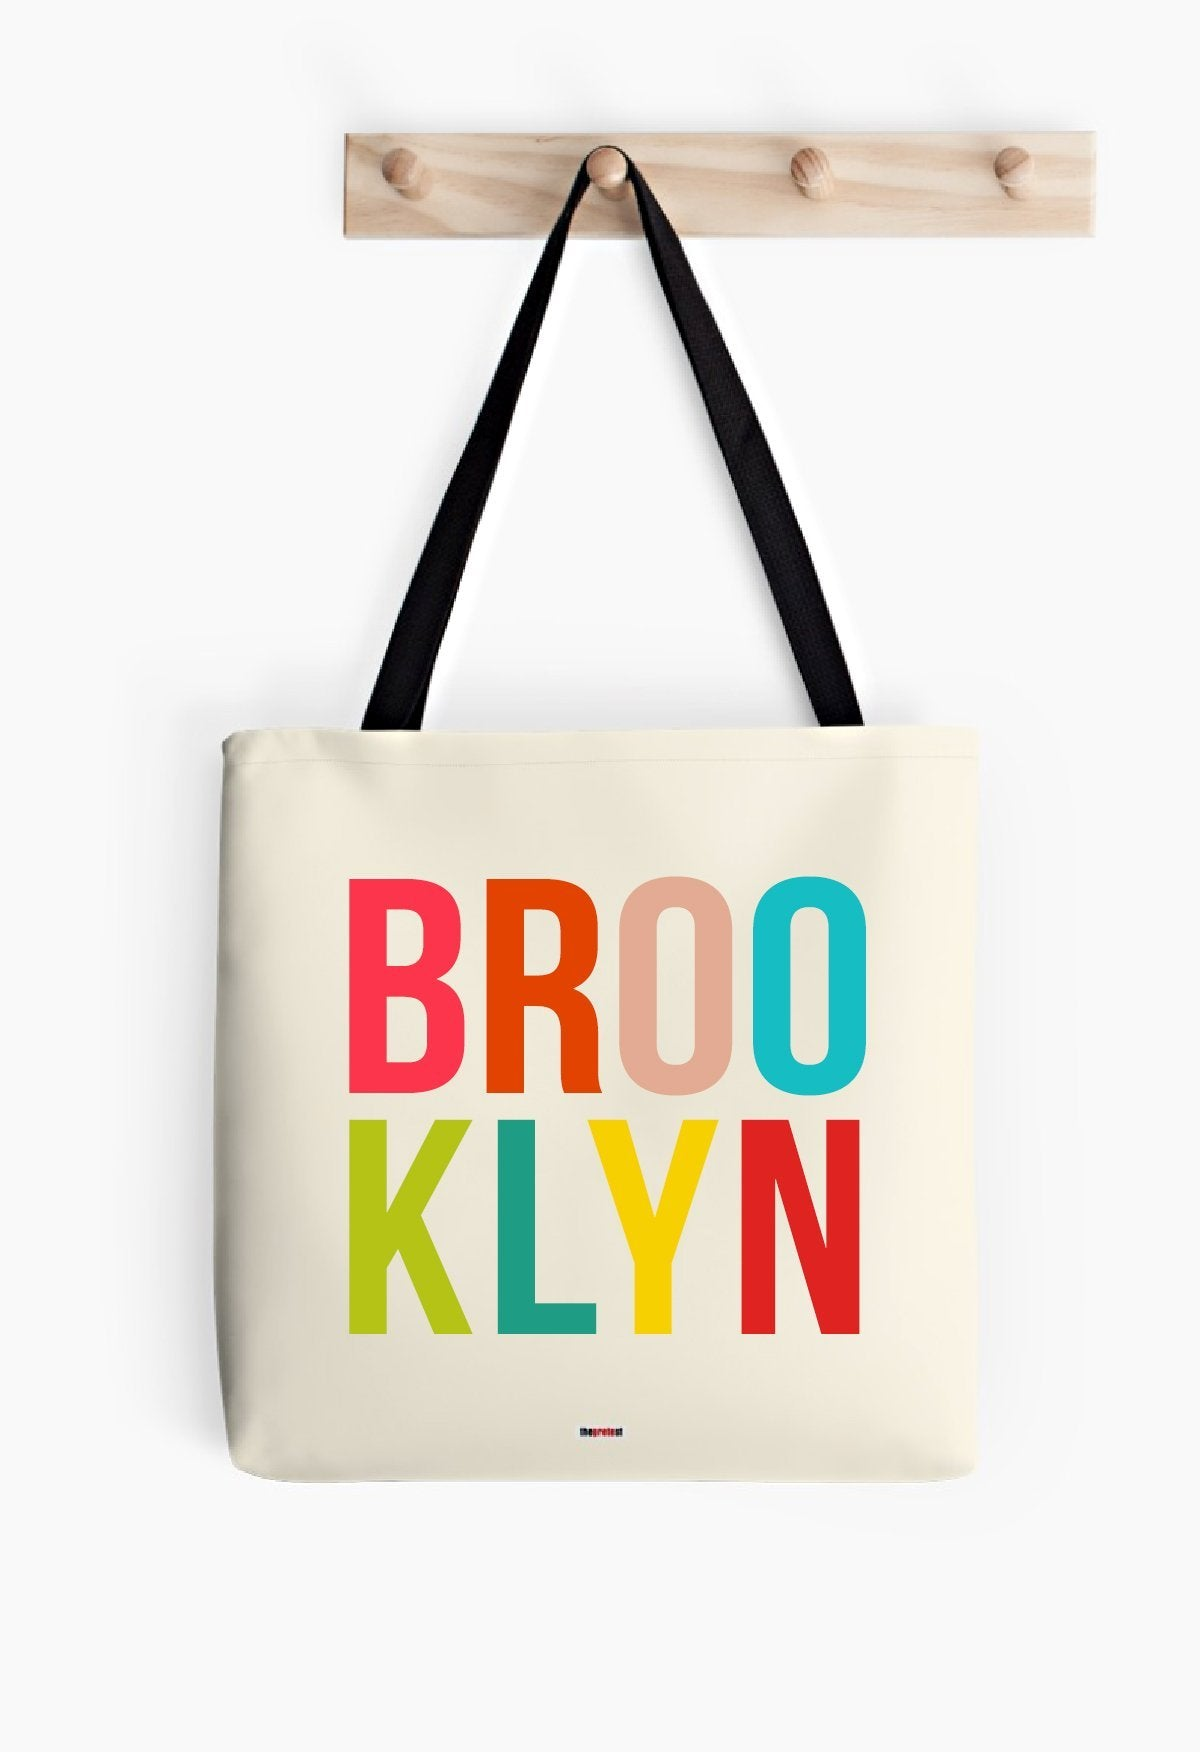 Brooklyn Tote bag - Brooklyn bag-TheGretest